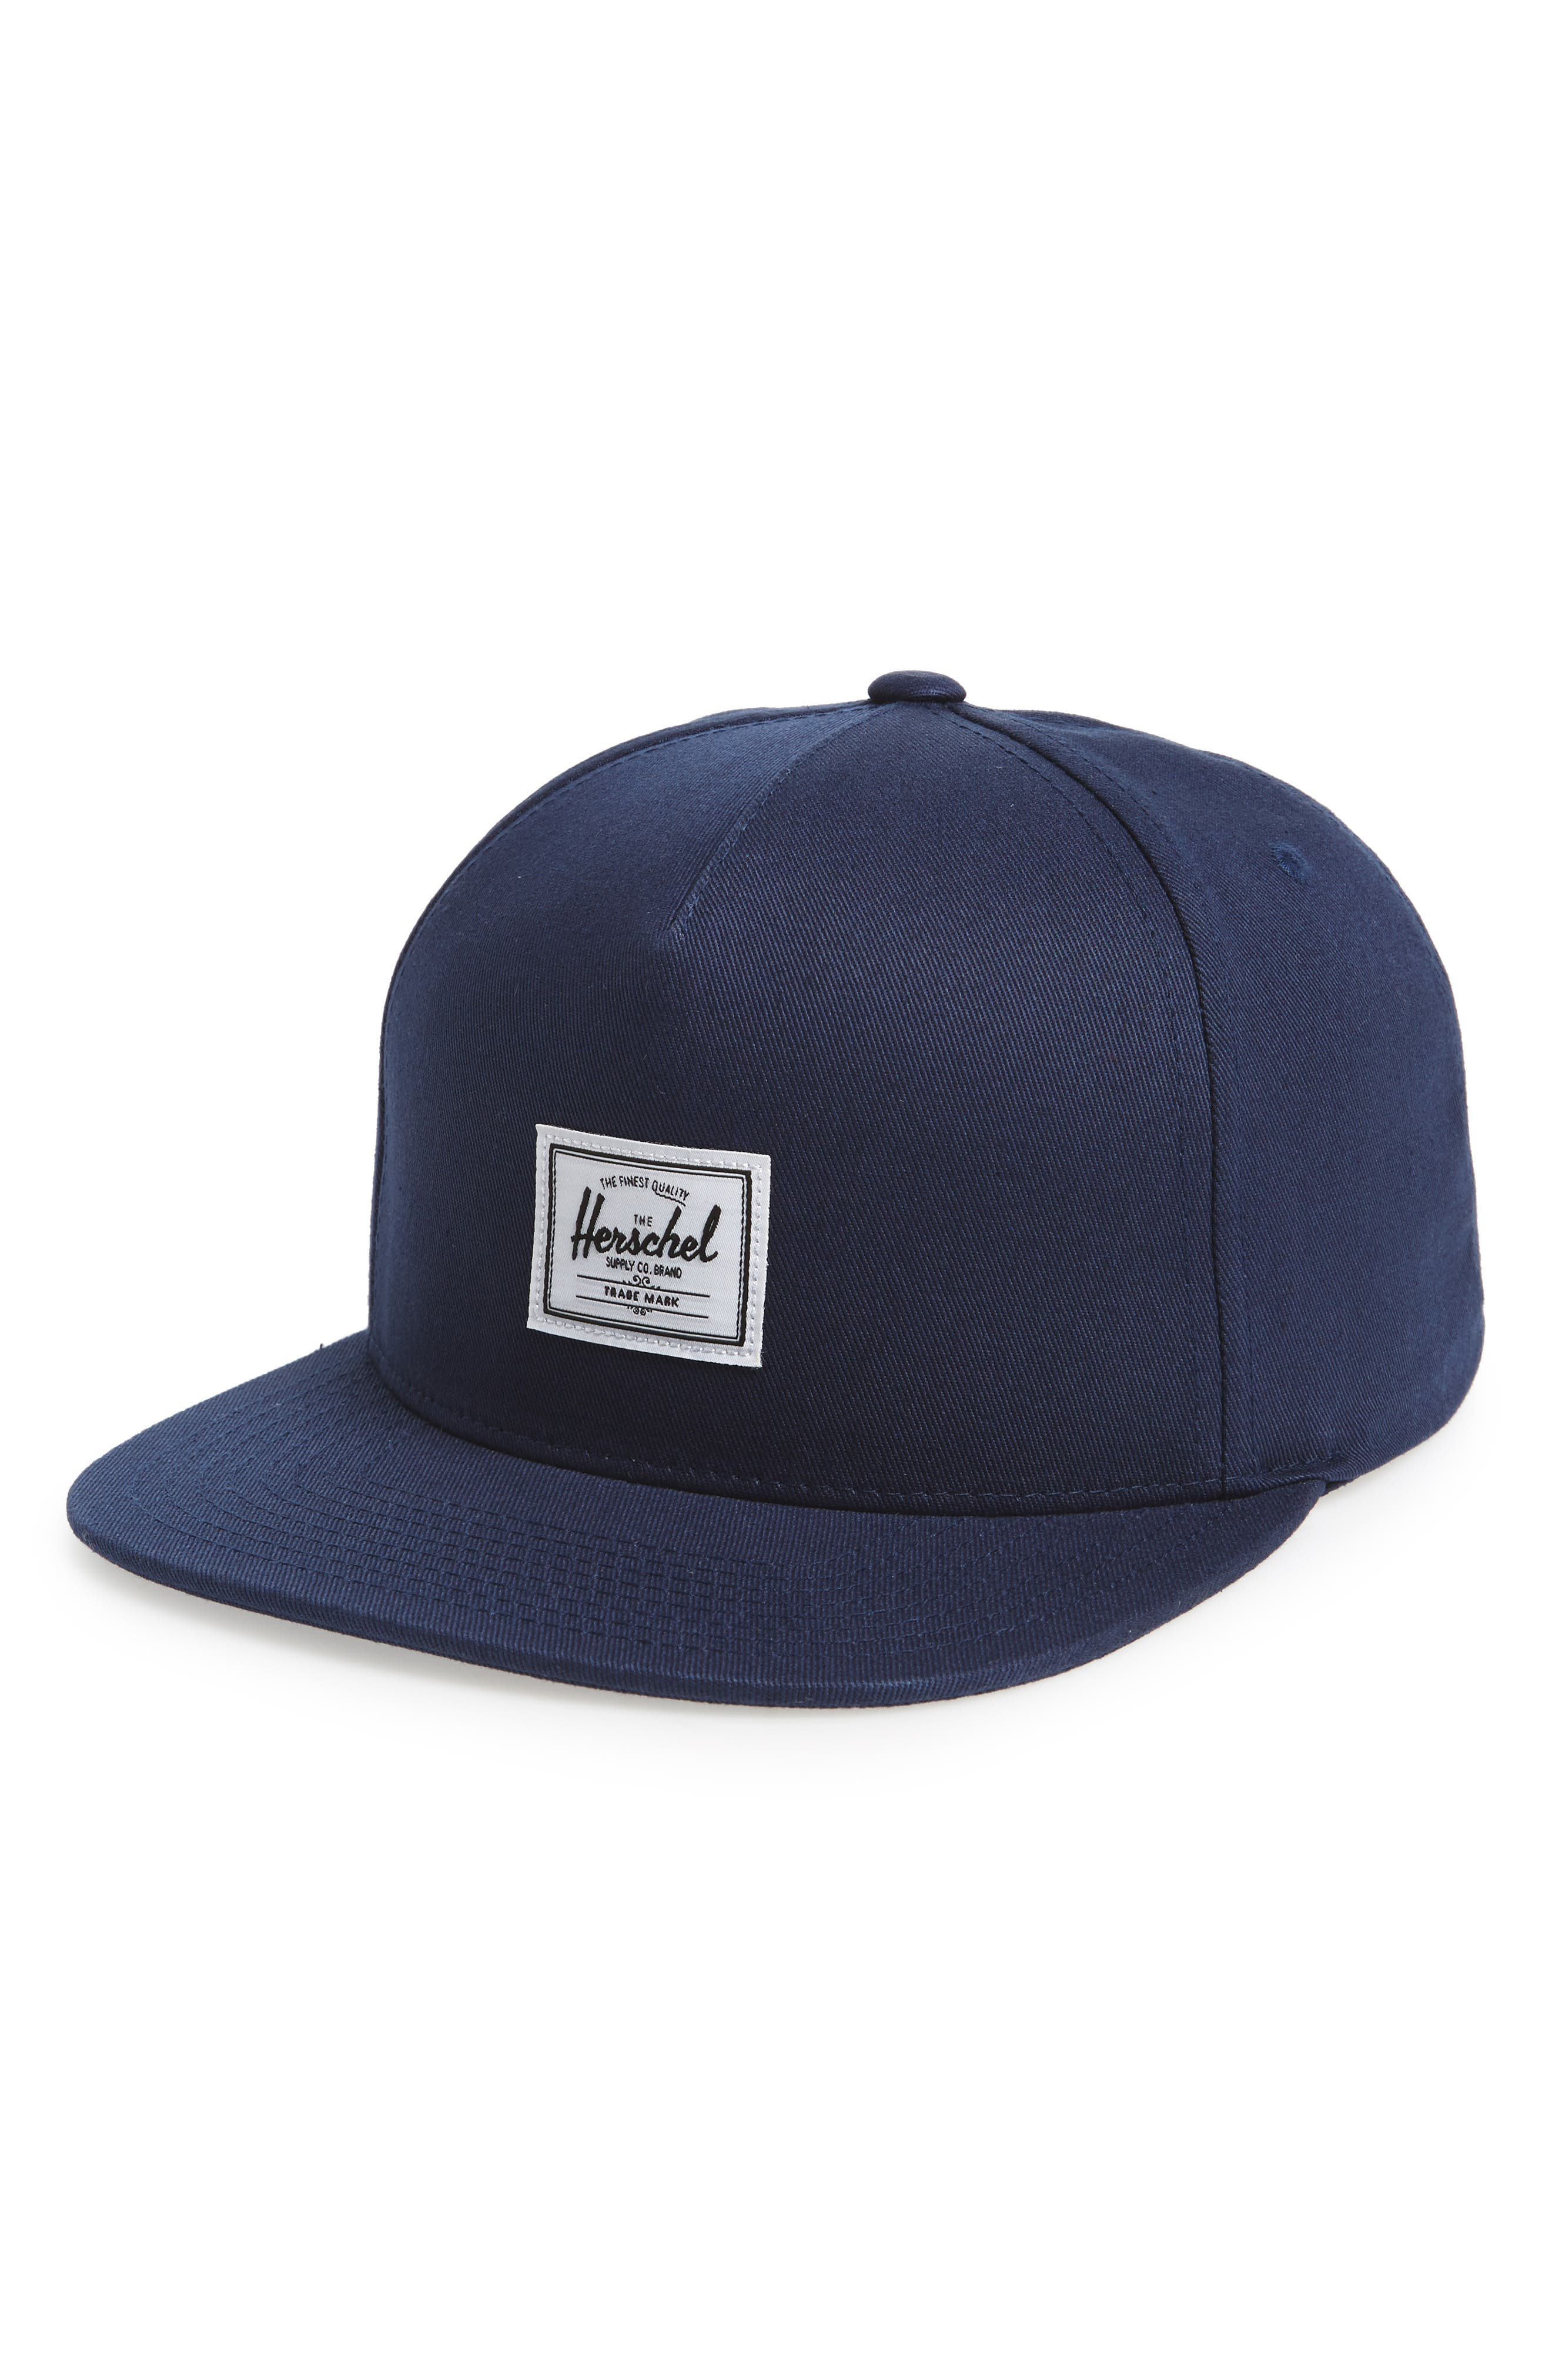 b12157c9f42e4 ... promo code for herschel supply co. dean snapback baseball cap nordstrom  2a8d7 8ac16